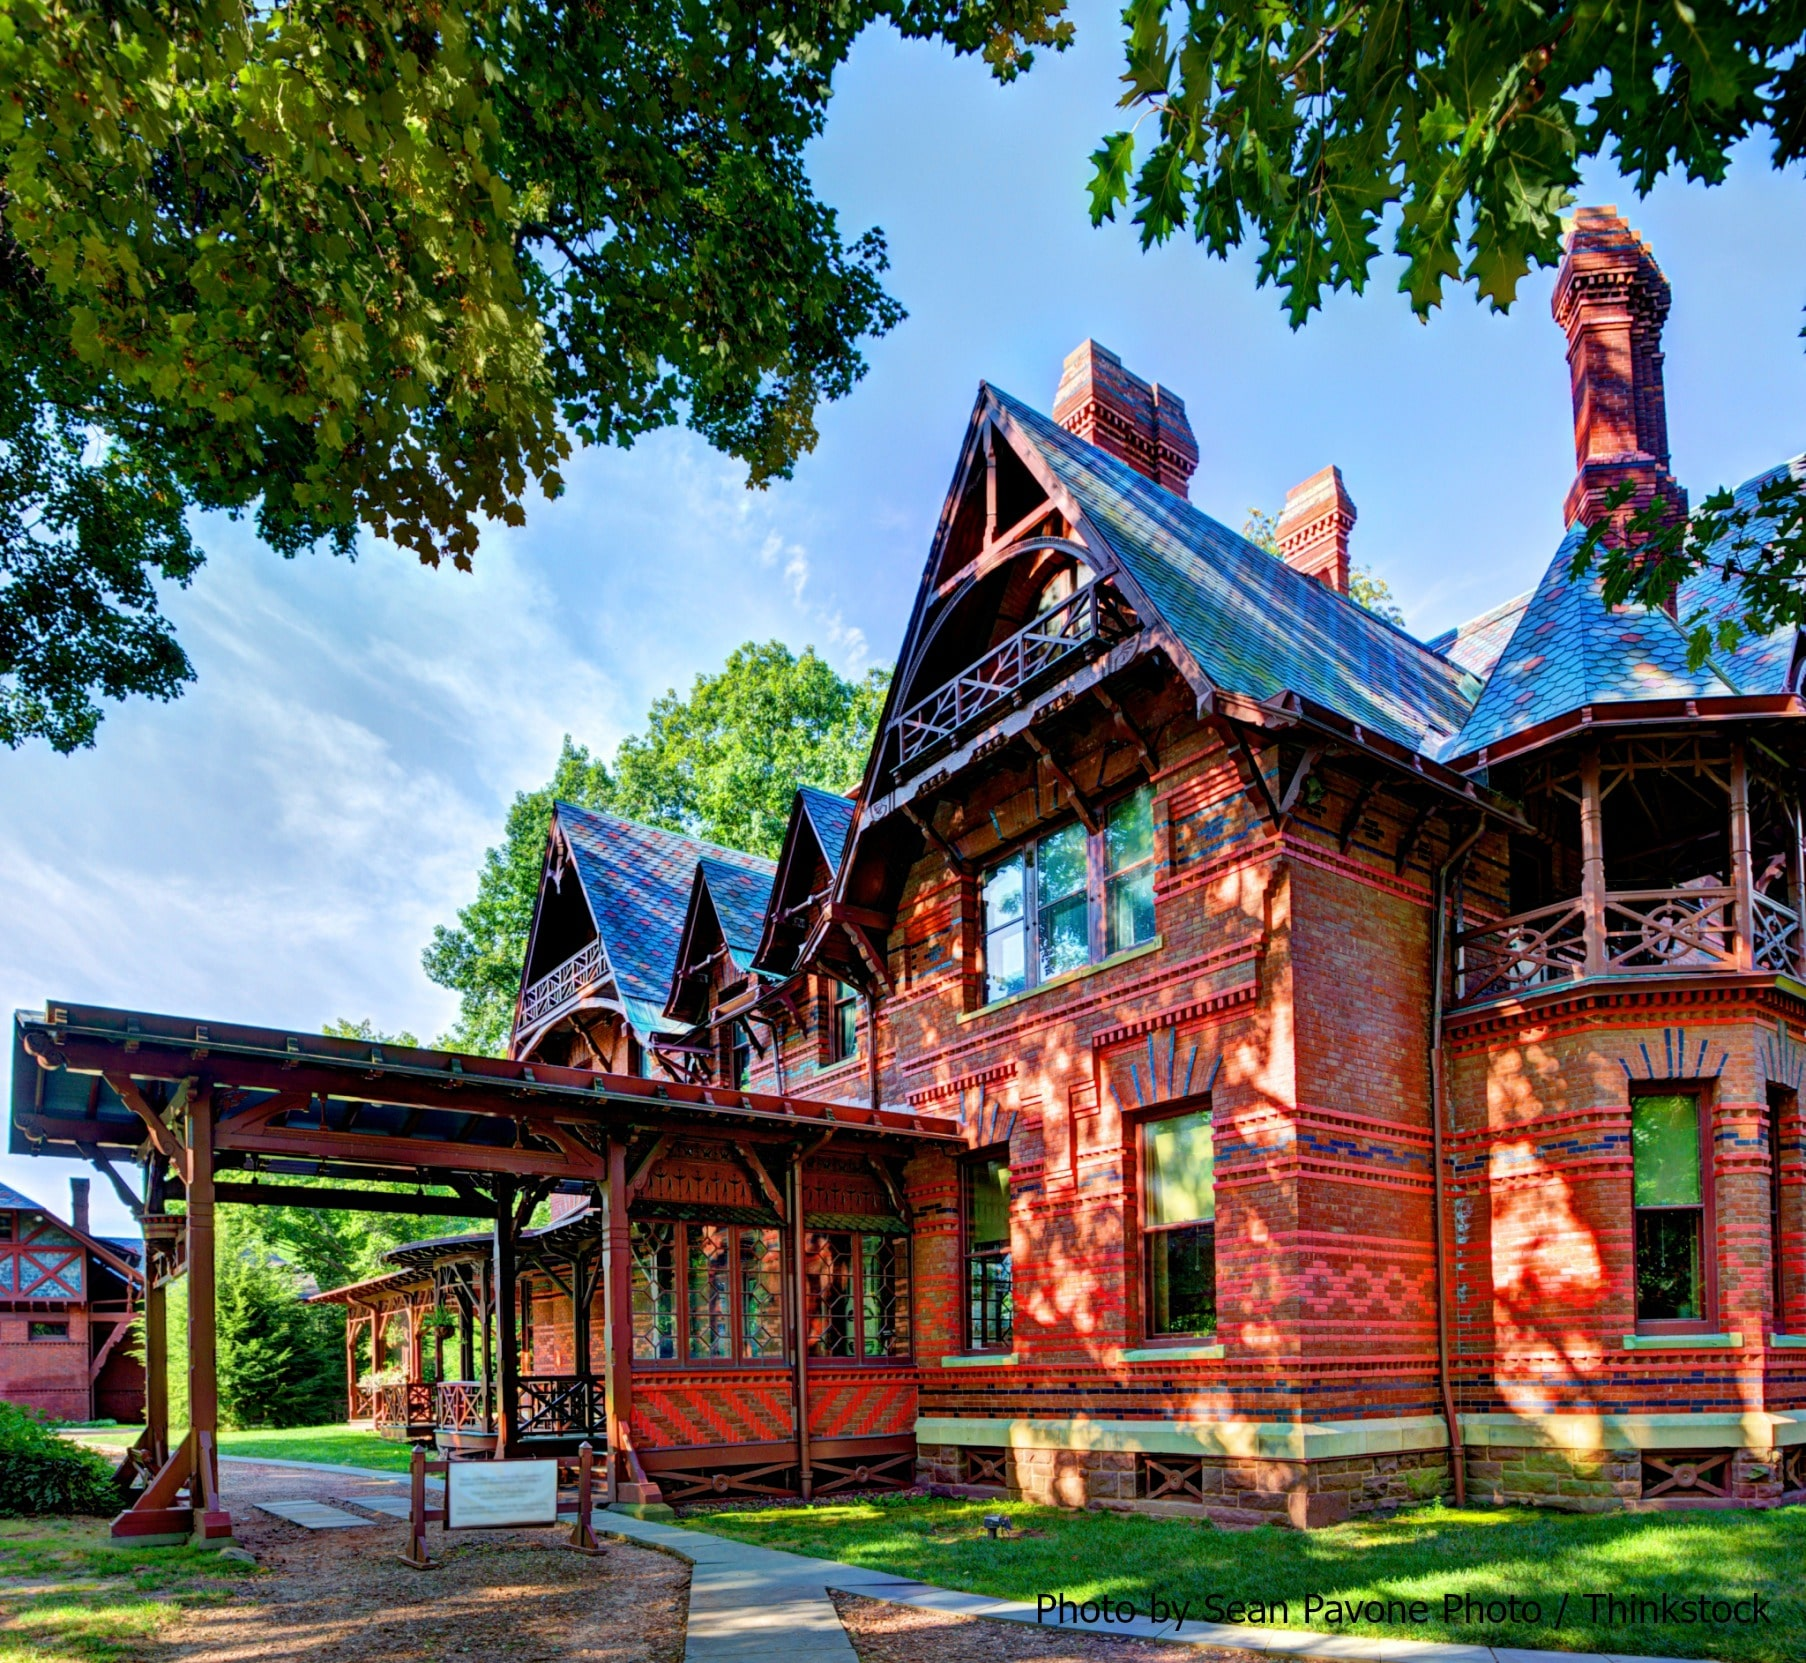 5 Reasons Why The Mark Twain House Is So Unique